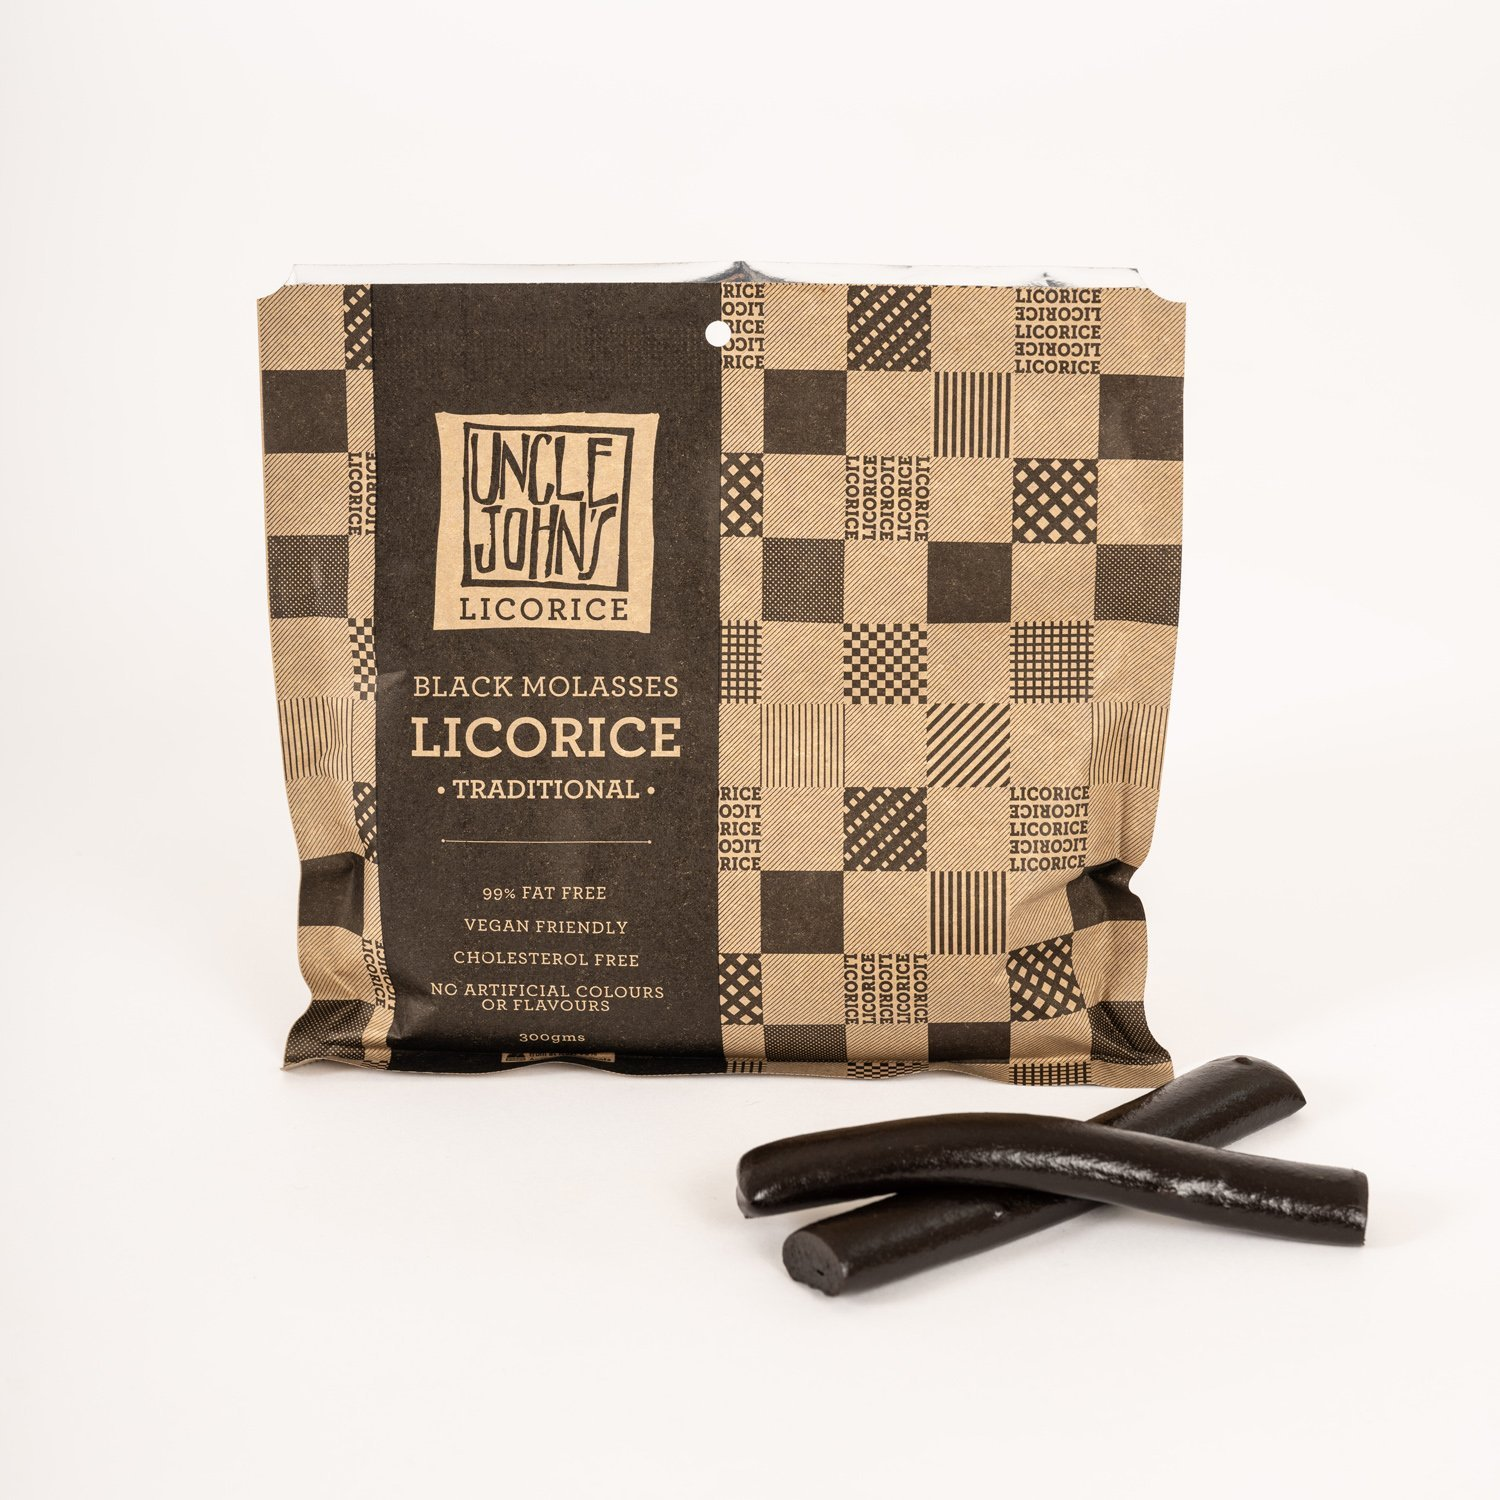 Black Molasses Licorice - Traditional (V) by Uncle John's